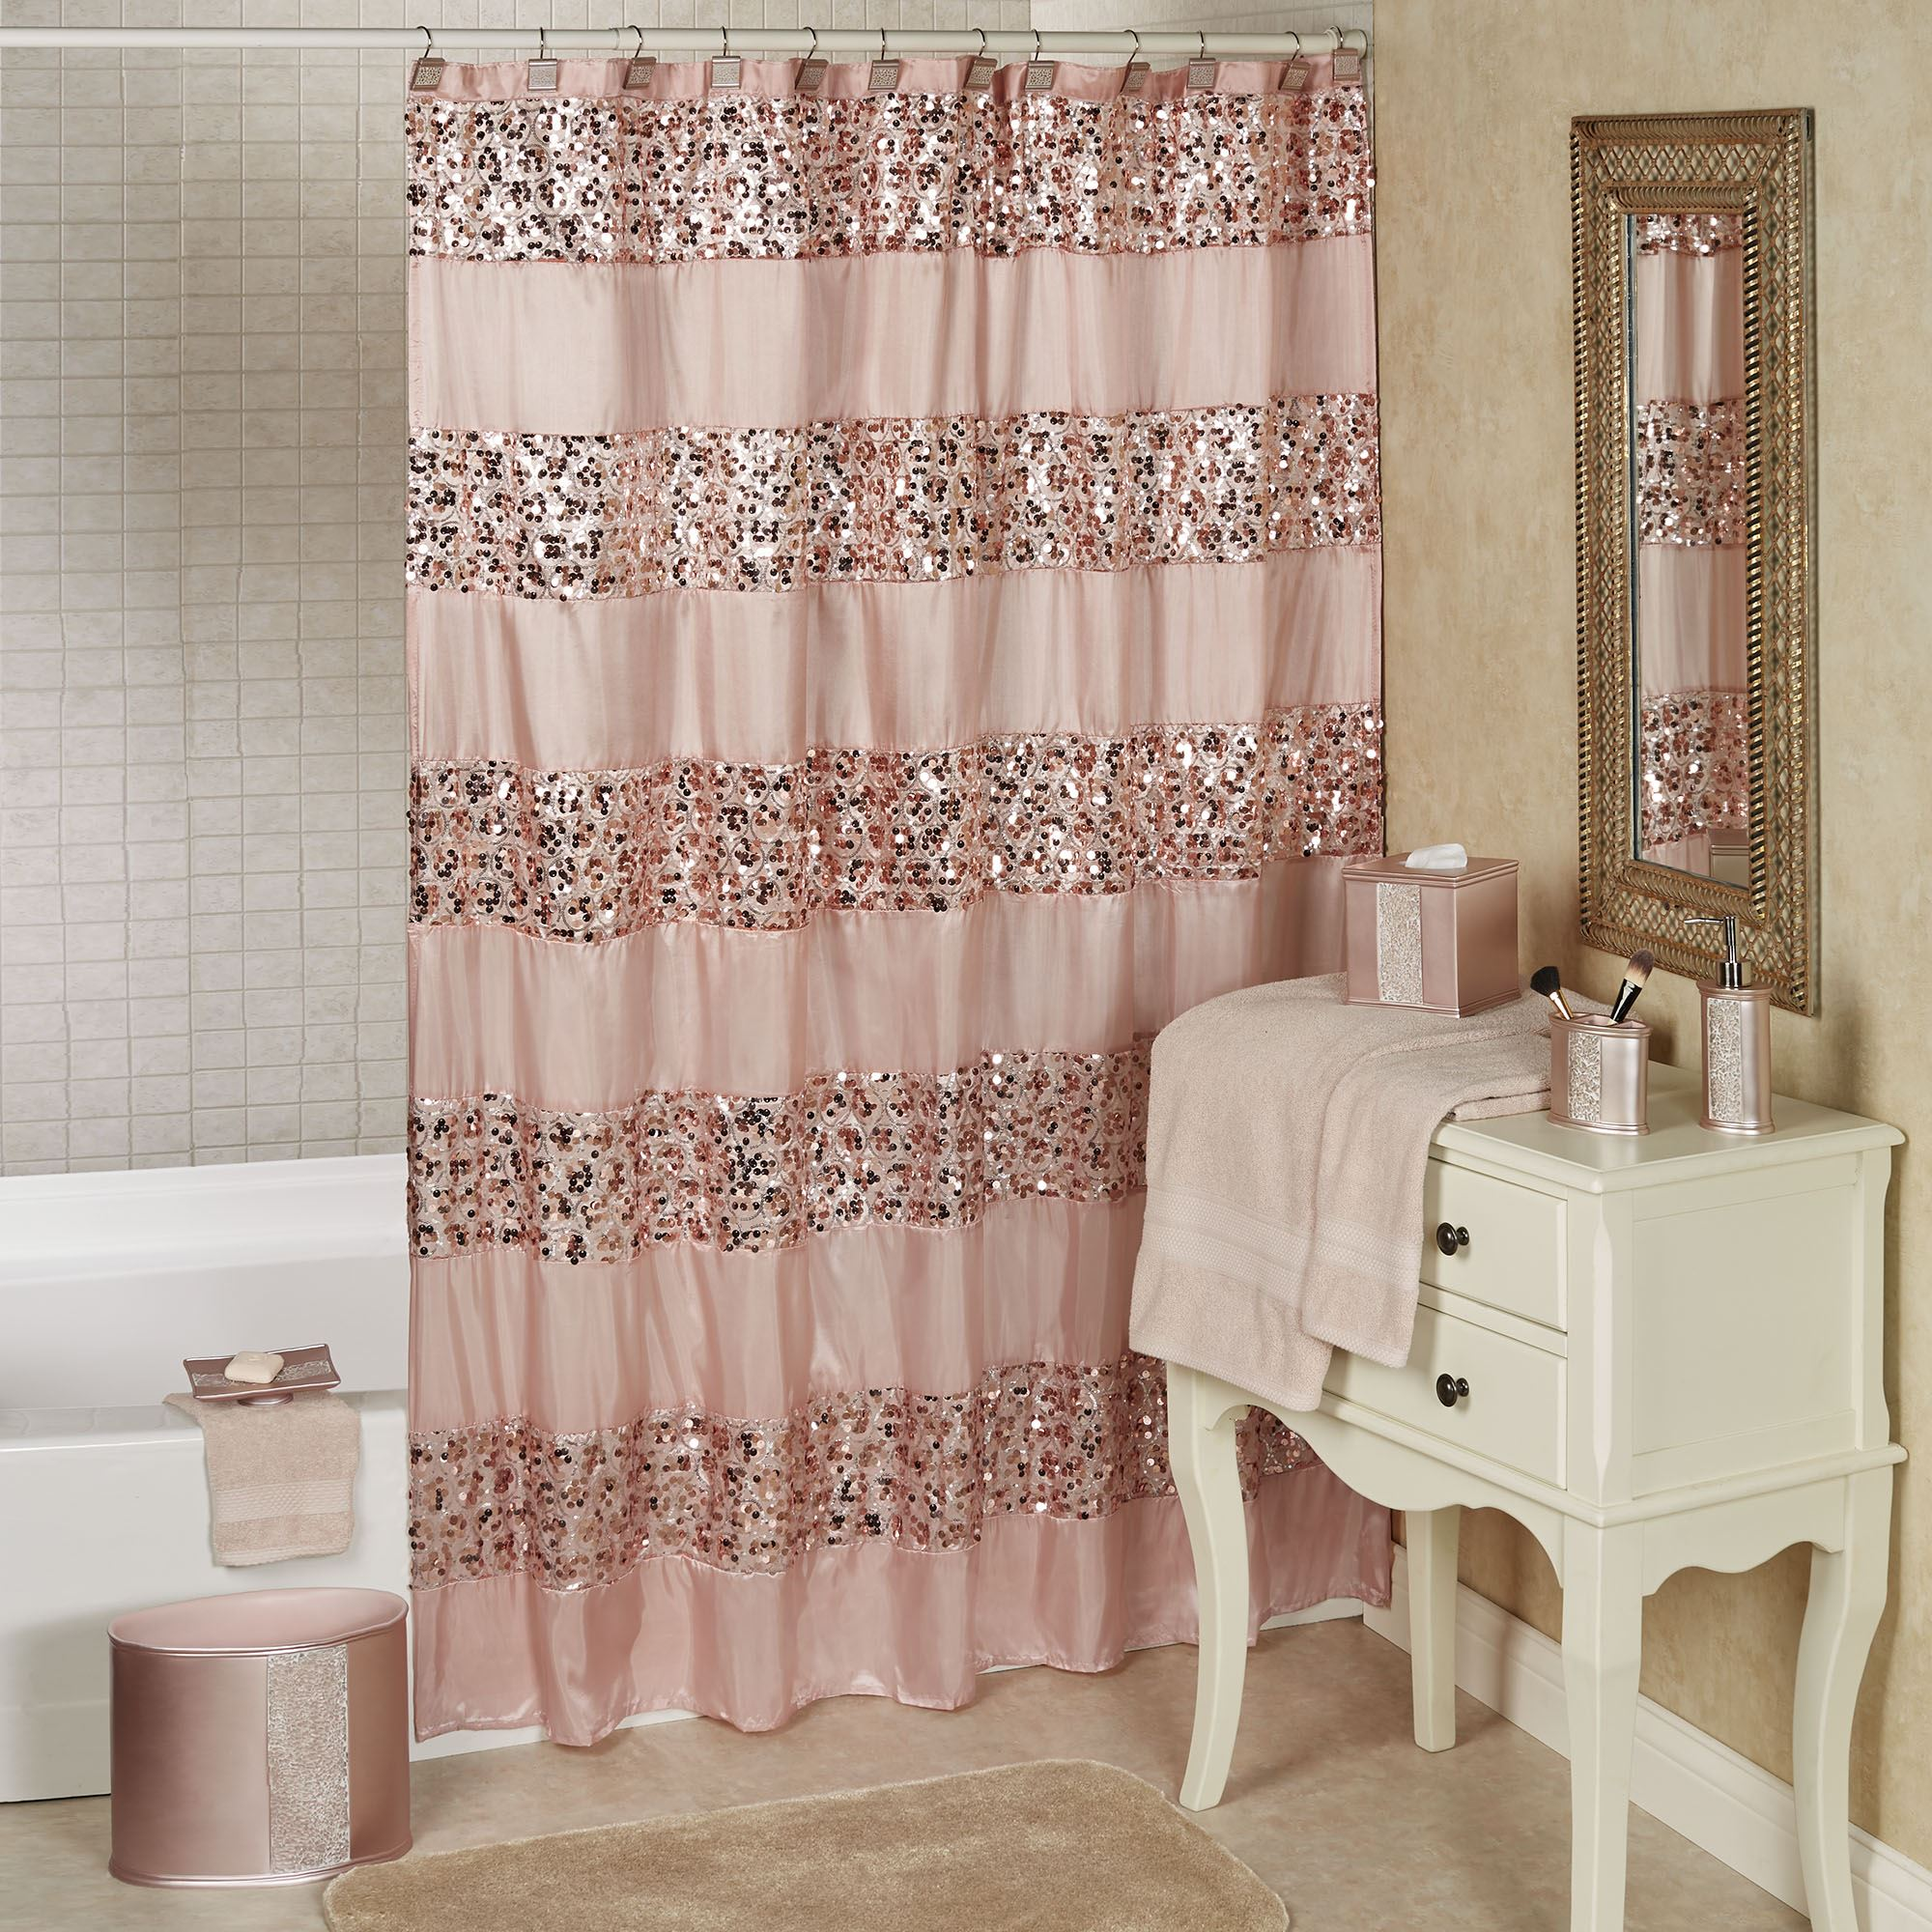 Sinatra Pale Blush Sequined Shower Curtain